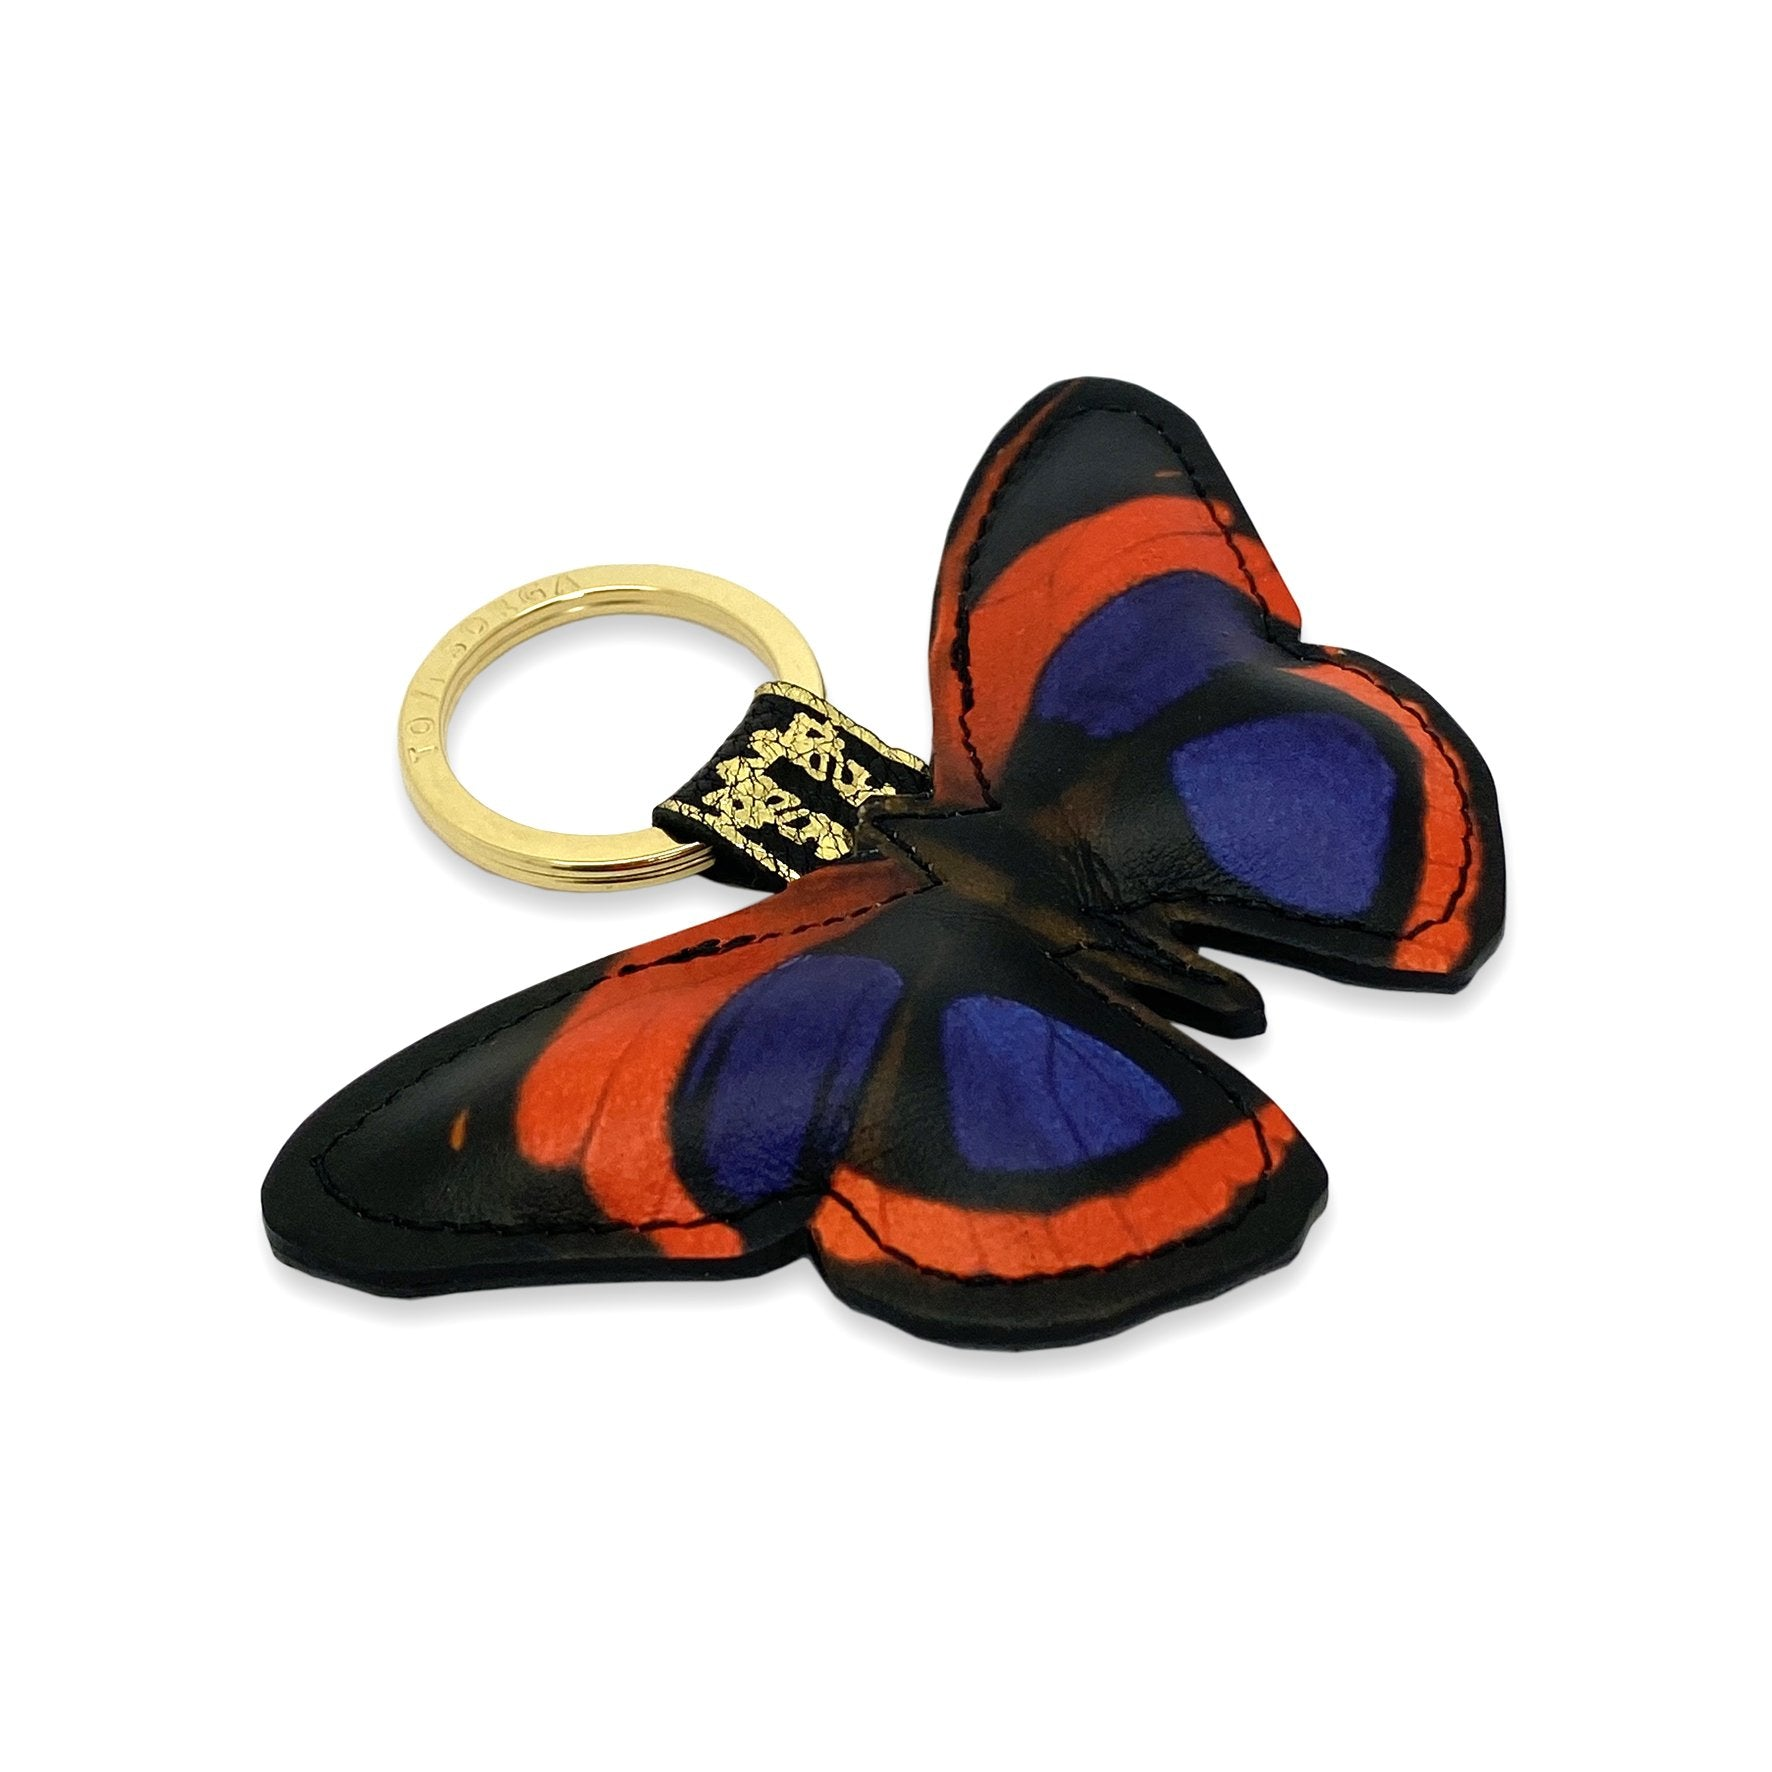 Leather Key Ring / Bag Charm - Kahlo Butterfly Key Ring / Bag Charm Tovi Sorga